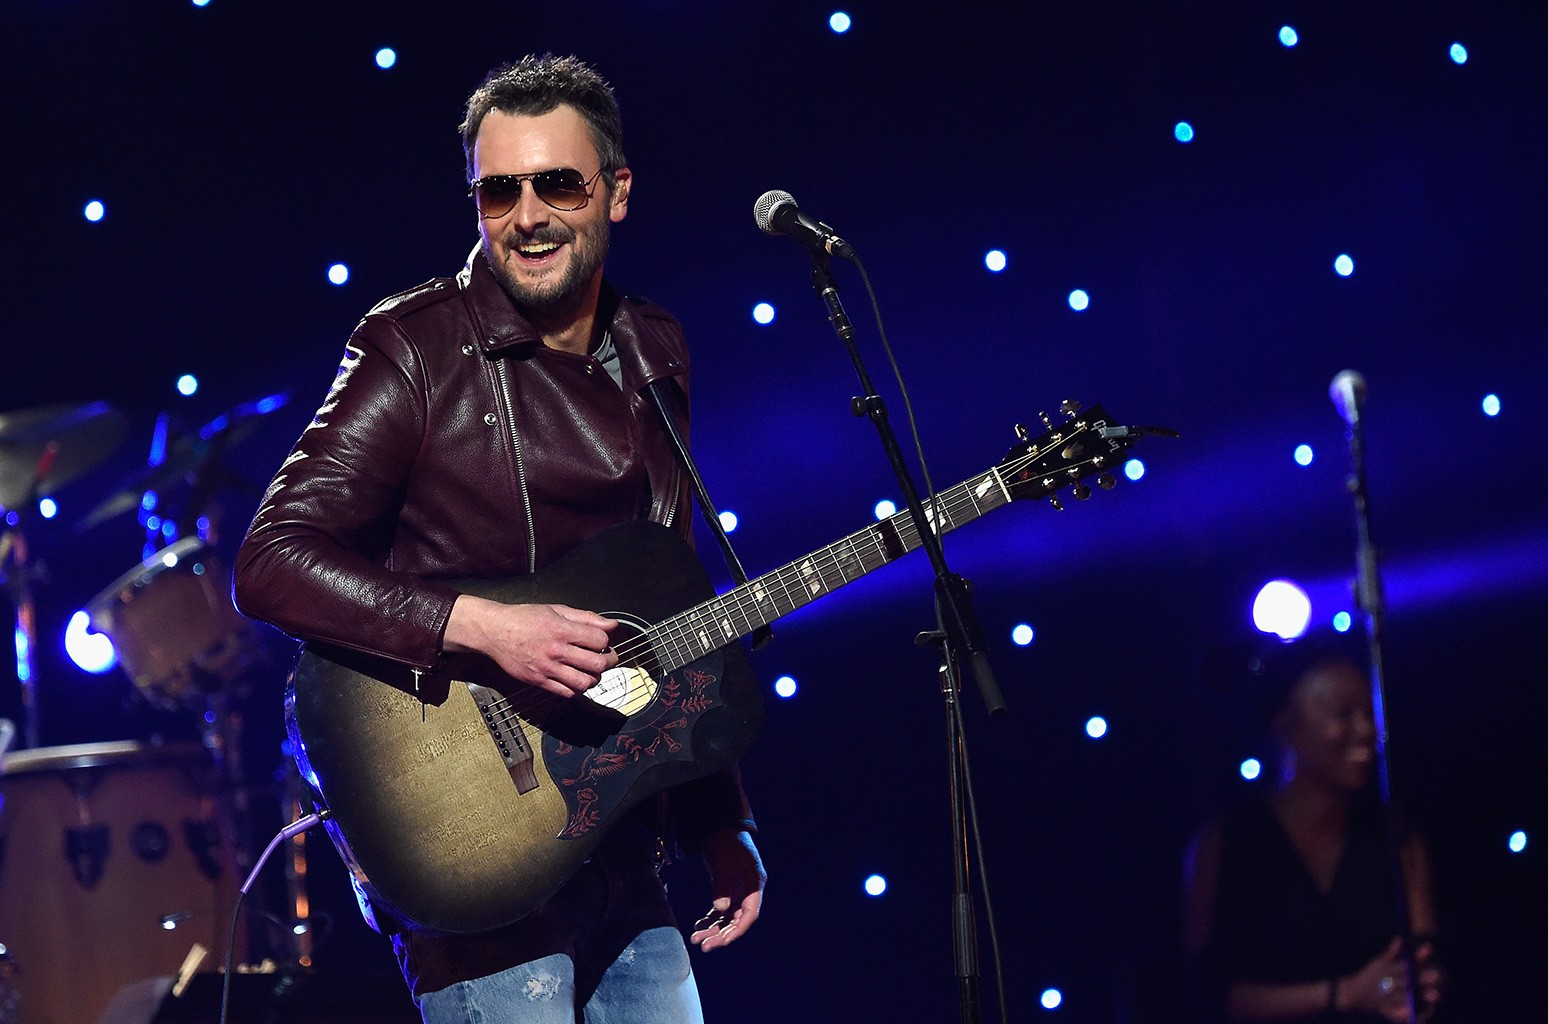 Eric Church performs on stage during the Imagine: John Lennon 75th Birthday Concert at The Theater at Madison Square Garden on Dec. 5, 2015 in New York City.